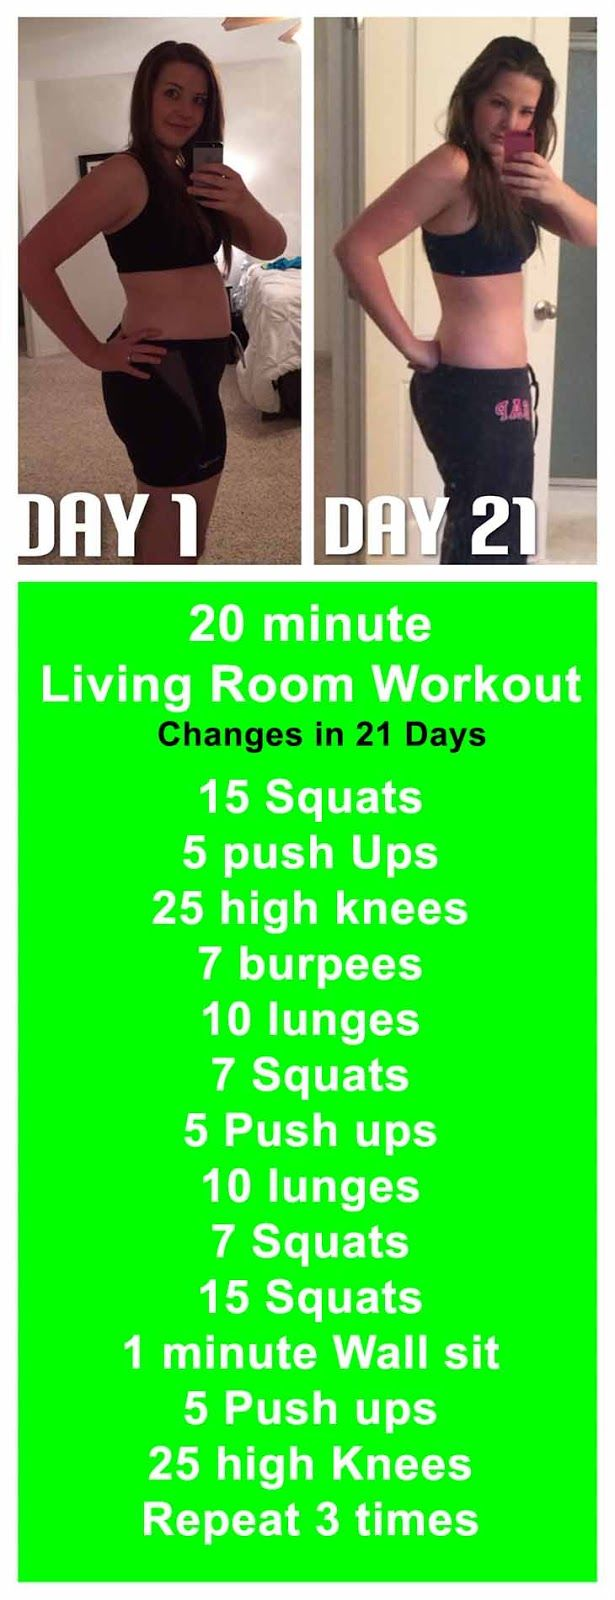 20 minute Living Room Workout and get Free Fat Loss Tips - 7 Free Fat Loss Tips That Work | 21 days | workout | fitness | fat loss | motivation | challenge | workout plan |